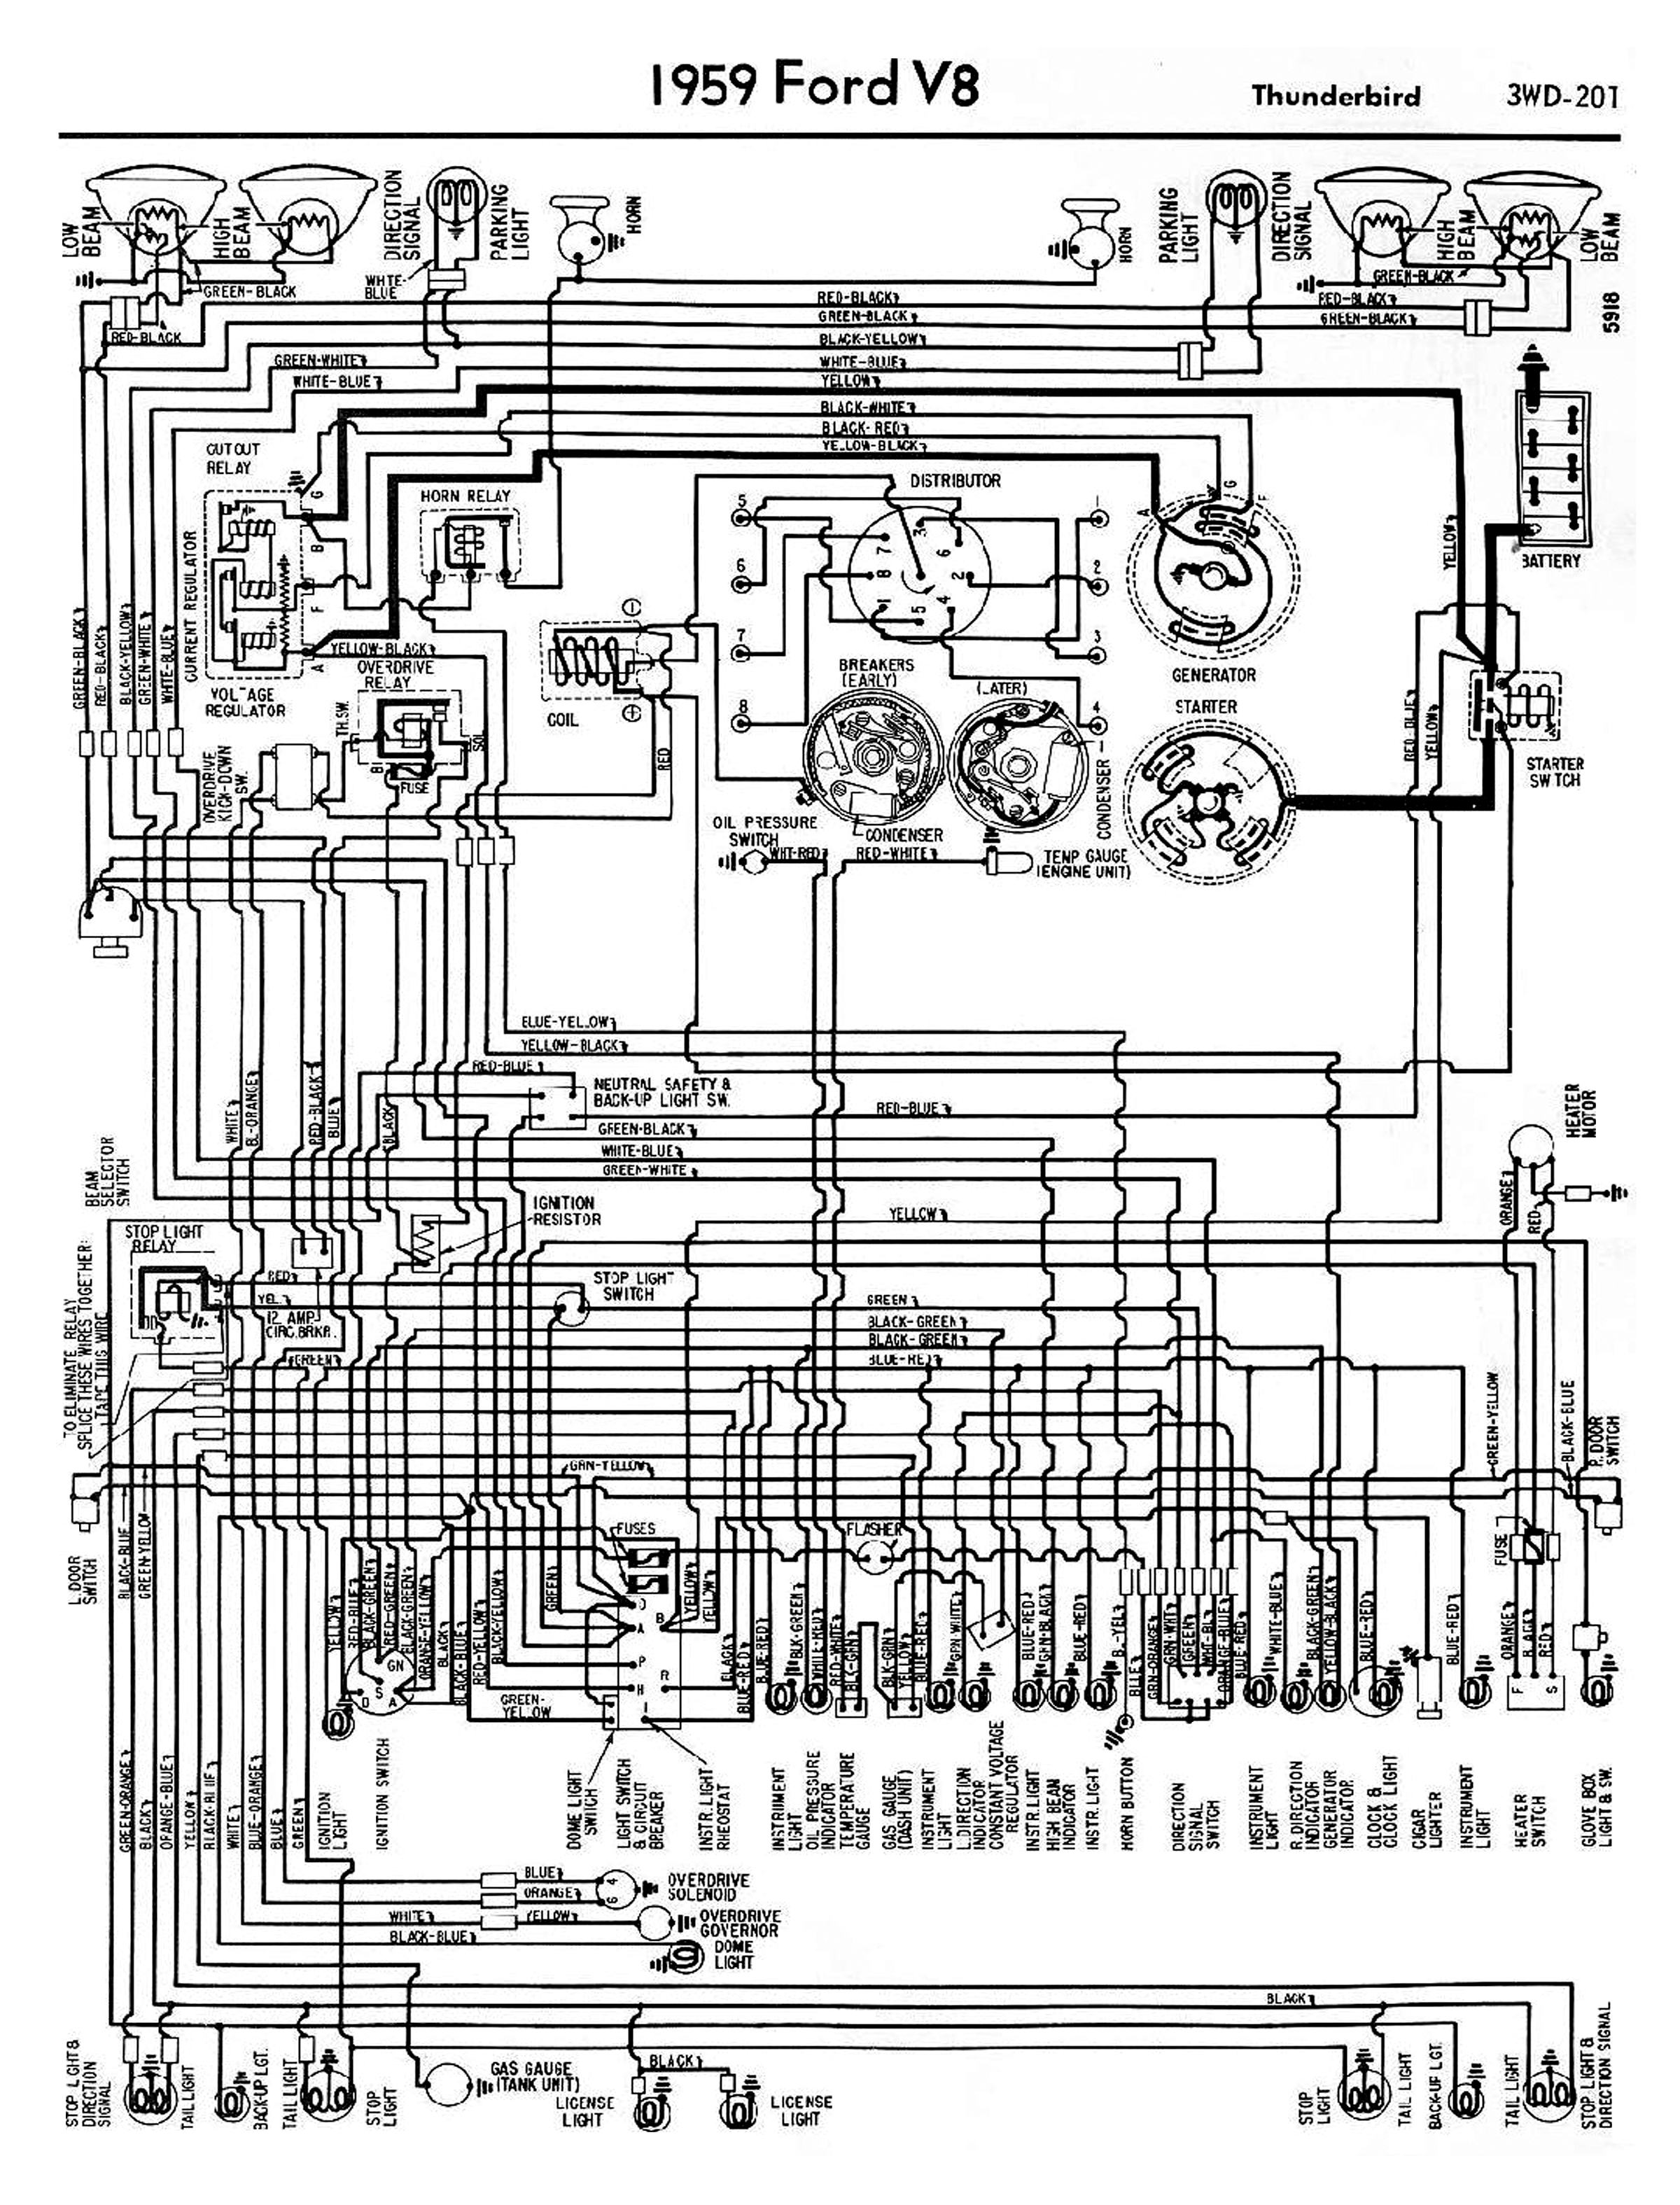 68 Ford Galaxy Wiring Diagram Library 1958 Ranchero Electrical Schematics 1957 1959 Galaxie